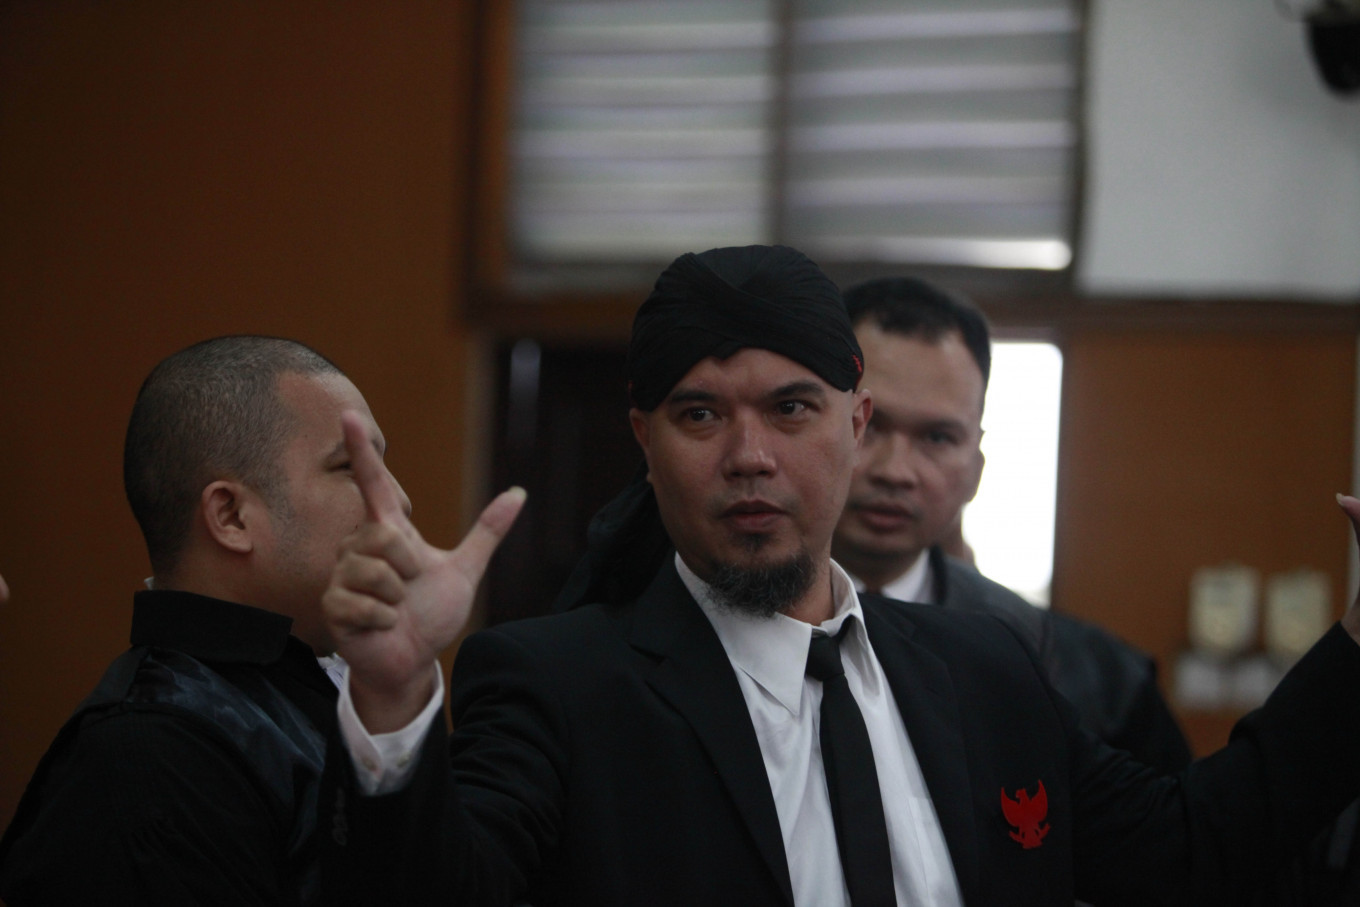 Ahmad Dhani gets 18 months for insulting Ahok supporters